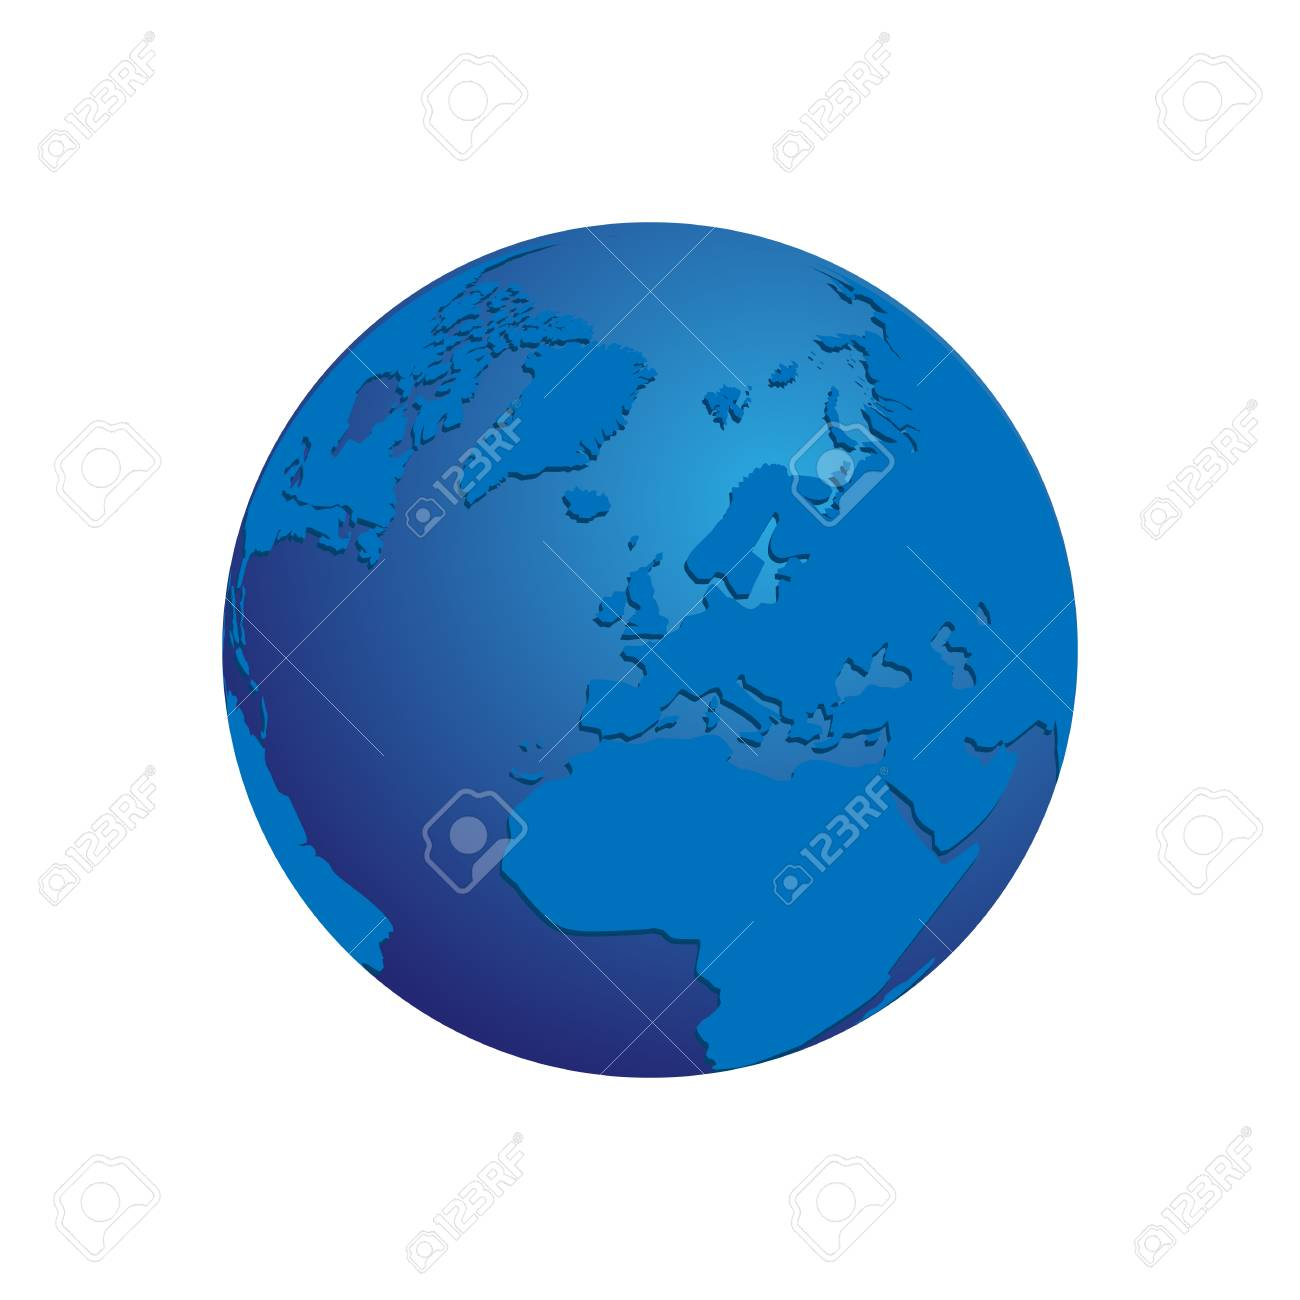 Realistic Green 3d World Map Globe Isolated Background Vector